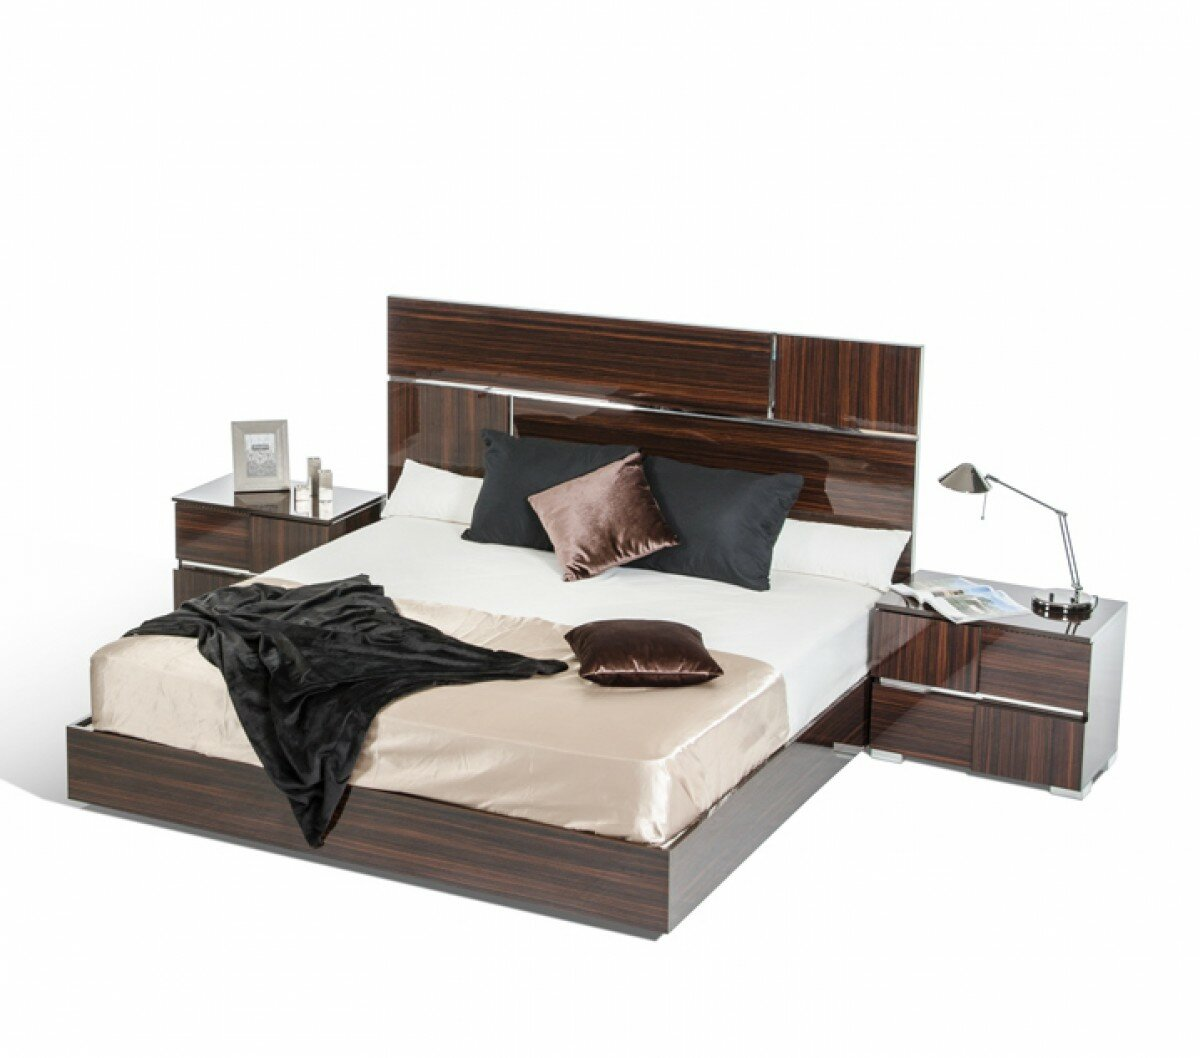 Orren ellis falbo italian california king platform bed wayfair